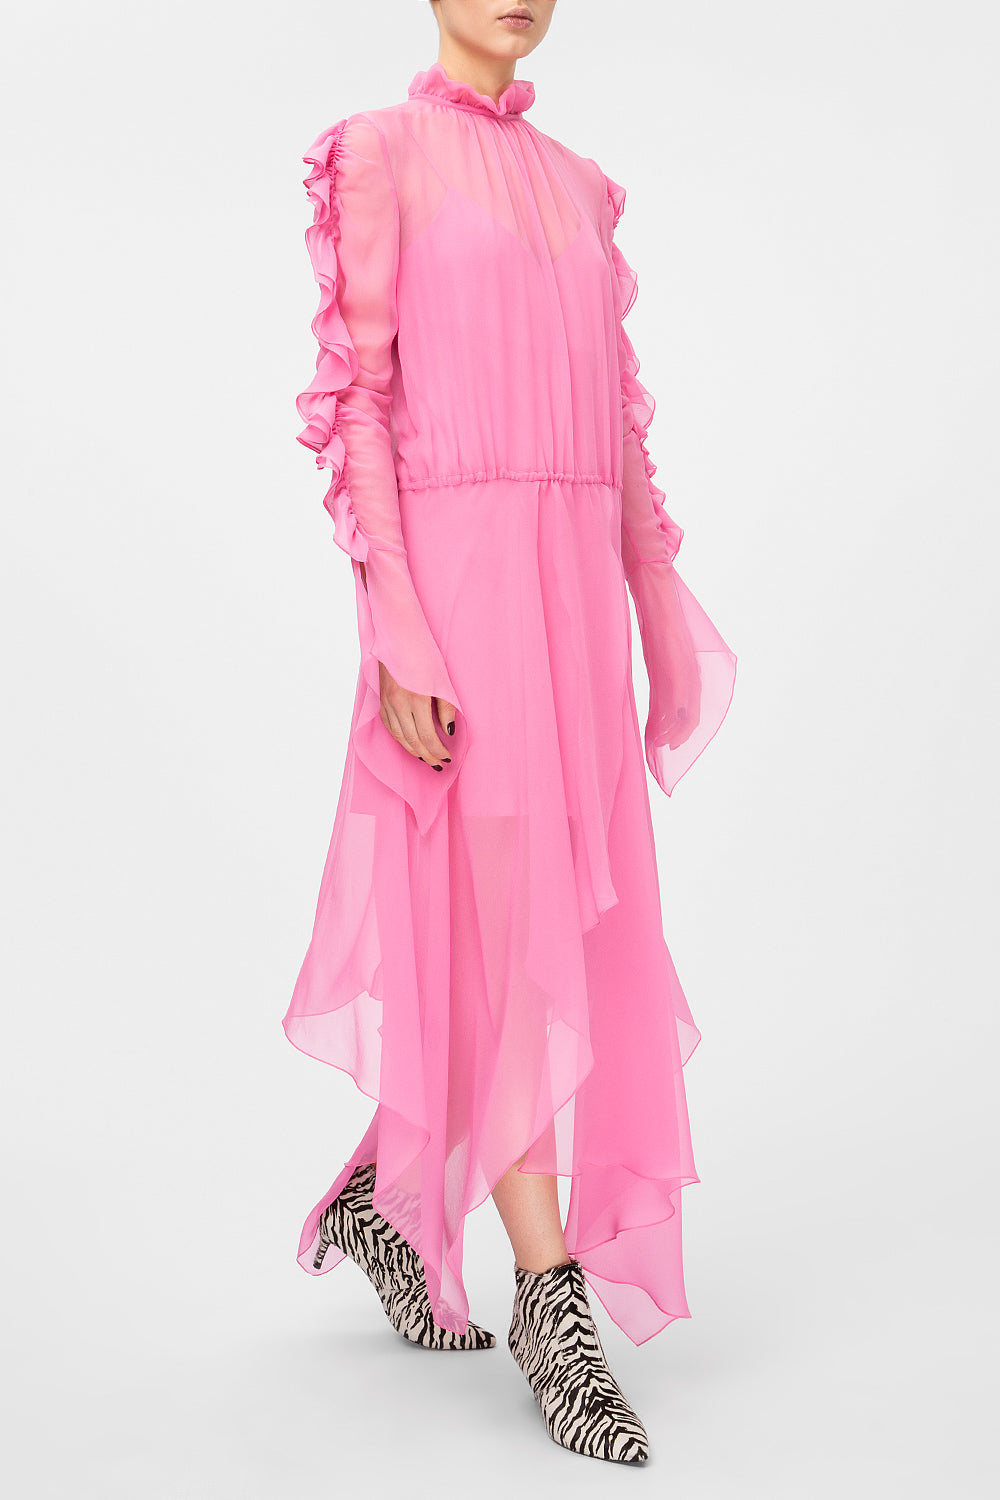 Midi dress with flounces on sleeves